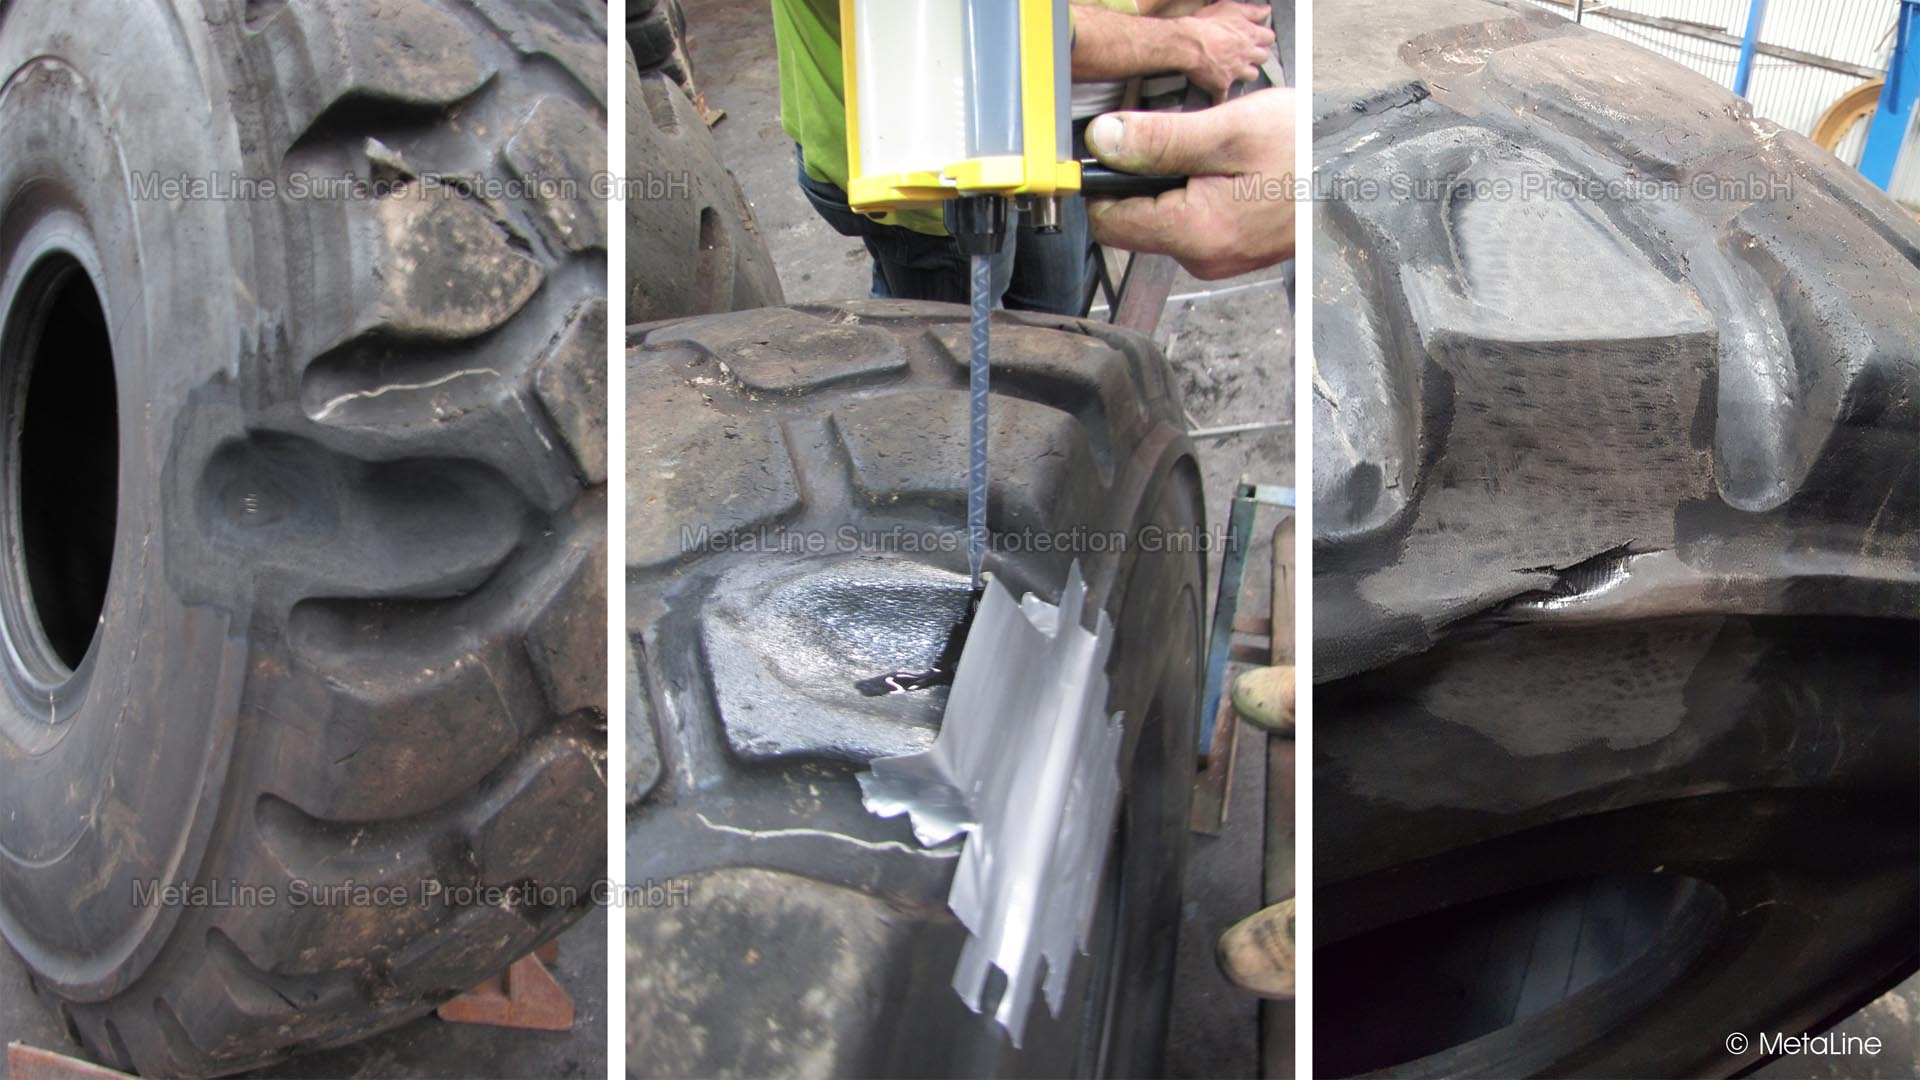 <!-- START: ConditionalContent --><!-- END: ConditionalContent -->   <!-- START: ConditionalContent --> OTR; Tyres; Repair; On site; Sealing; Flank; Overnight; on the rim, tyre damage;  <!-- END: ConditionalContent -->   <!-- START: ConditionalContent --><!-- END: ConditionalContent -->   <!-- START: ConditionalContent --><!-- END: ConditionalContent -->